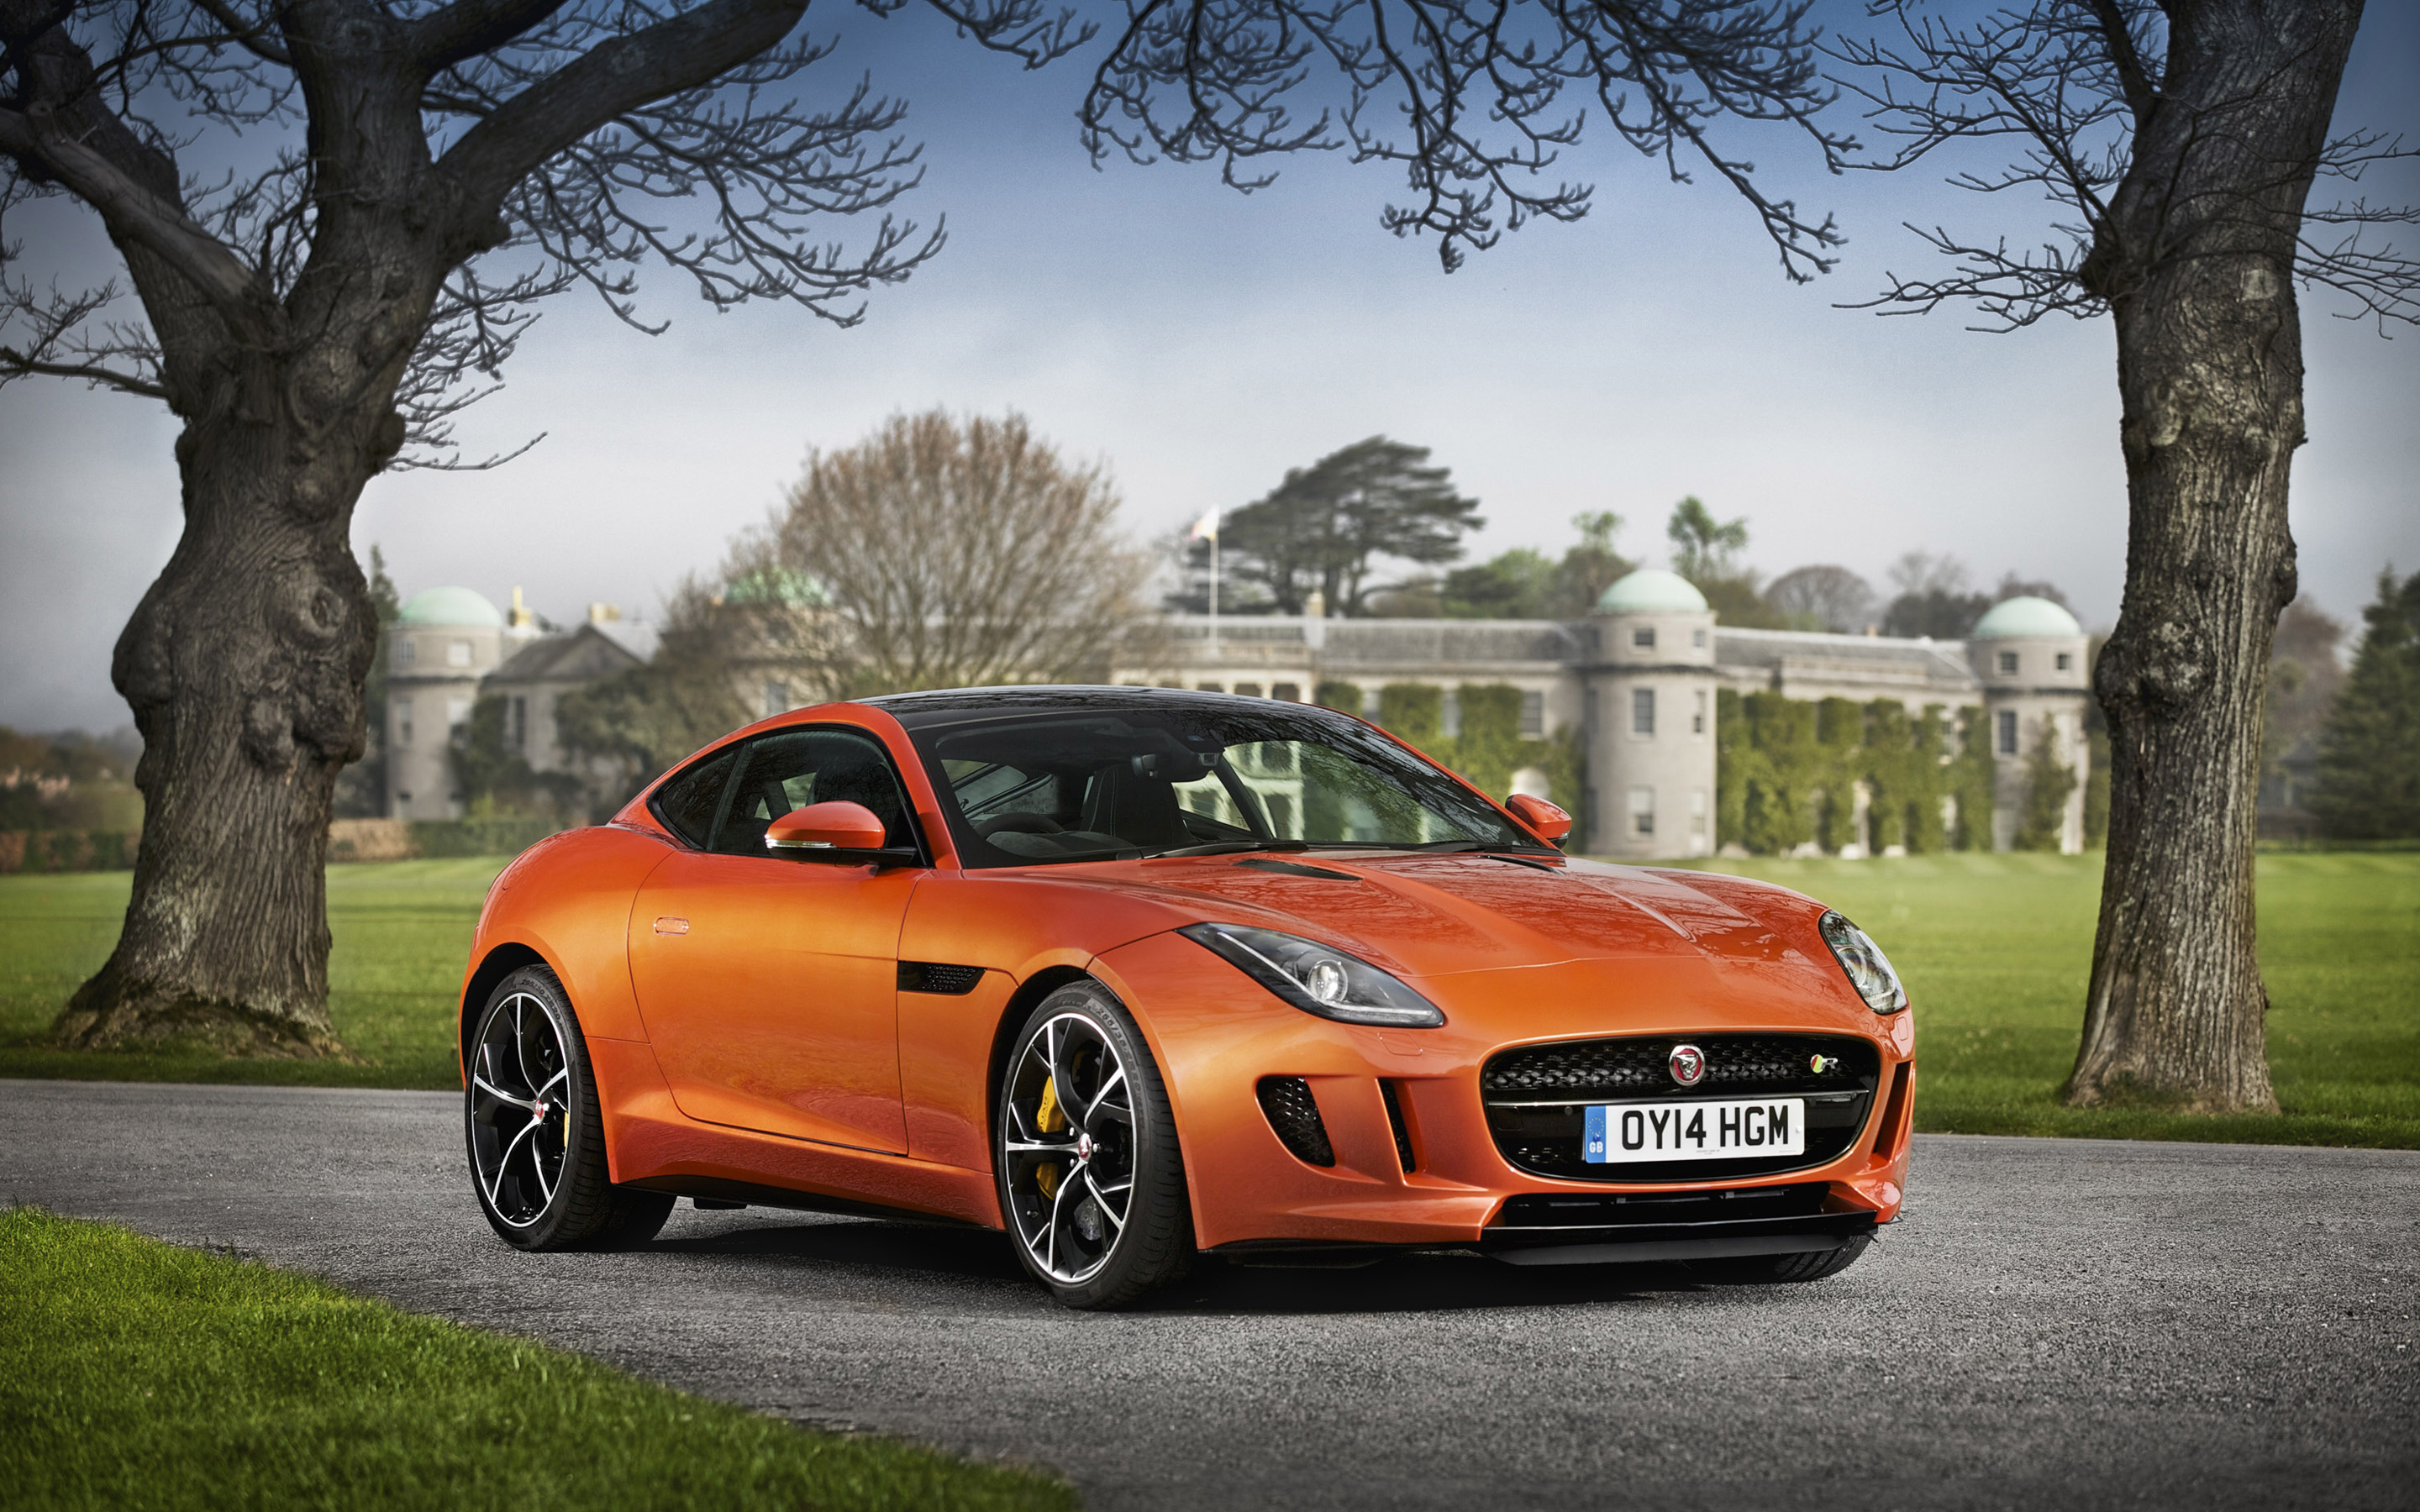 2014 jaguar f type r coupe 7 wallpaper | hd car wallpapers | id #4623